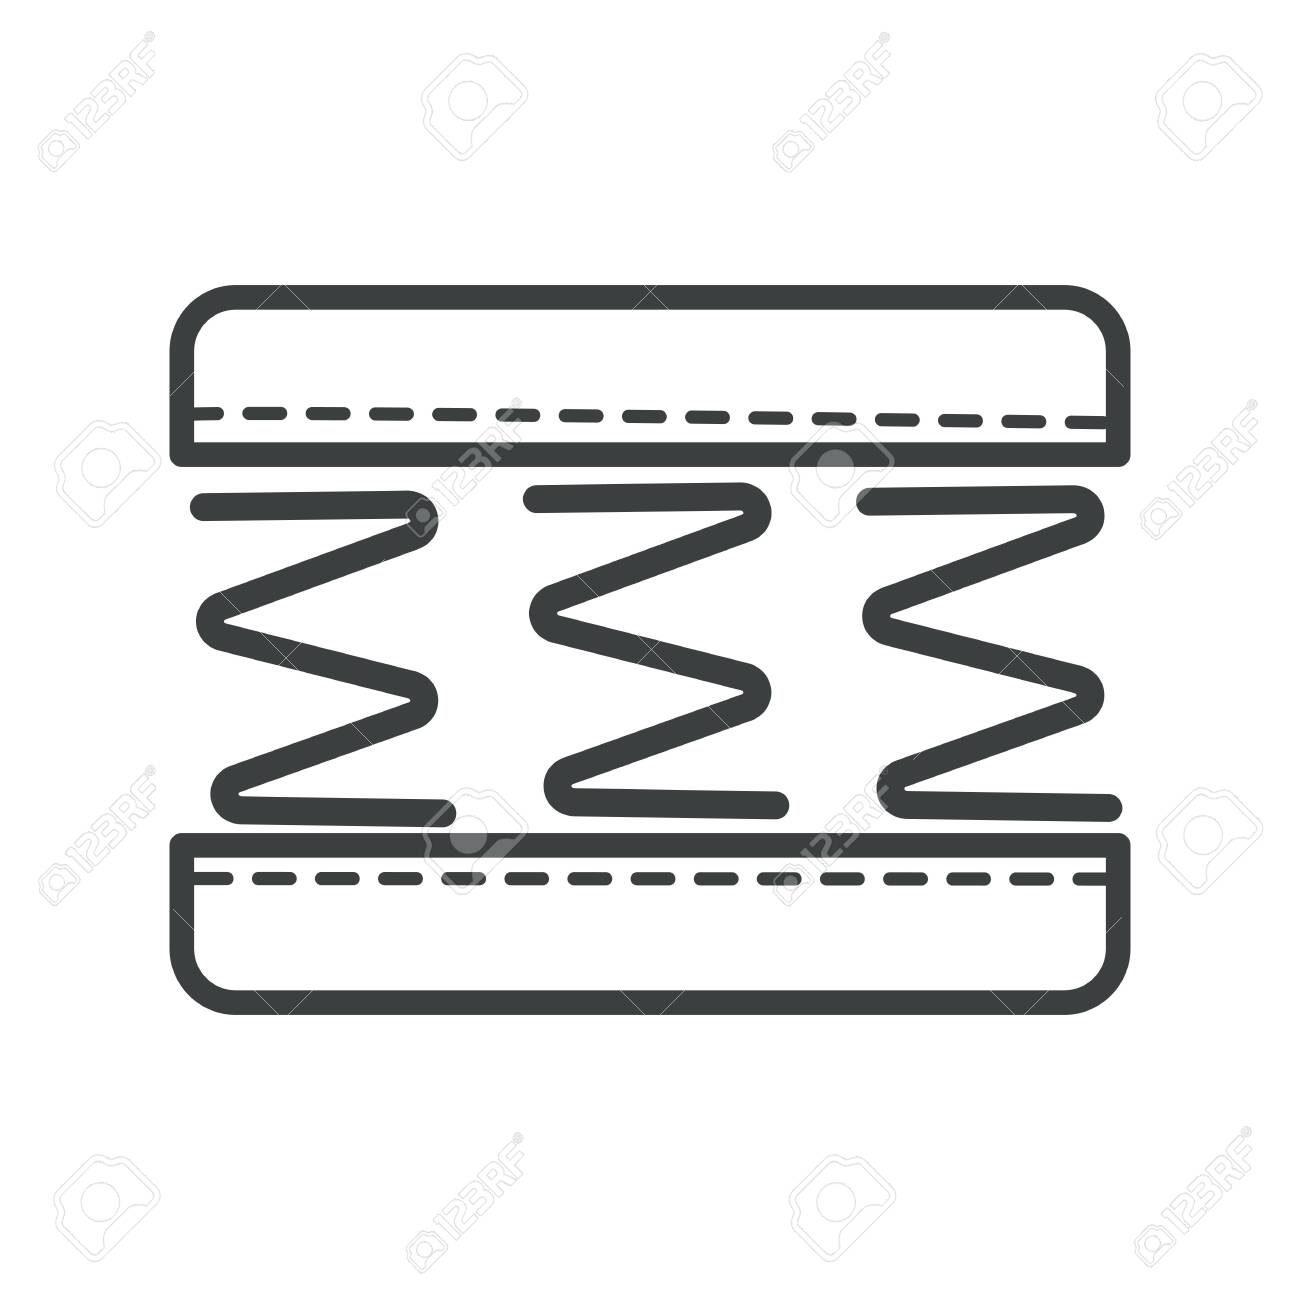 Orthopedic Mattress With Springs And Memory Foam Isolated Icon Royalty Free Cliparts Vectors And Stock Illustration Image 130367041